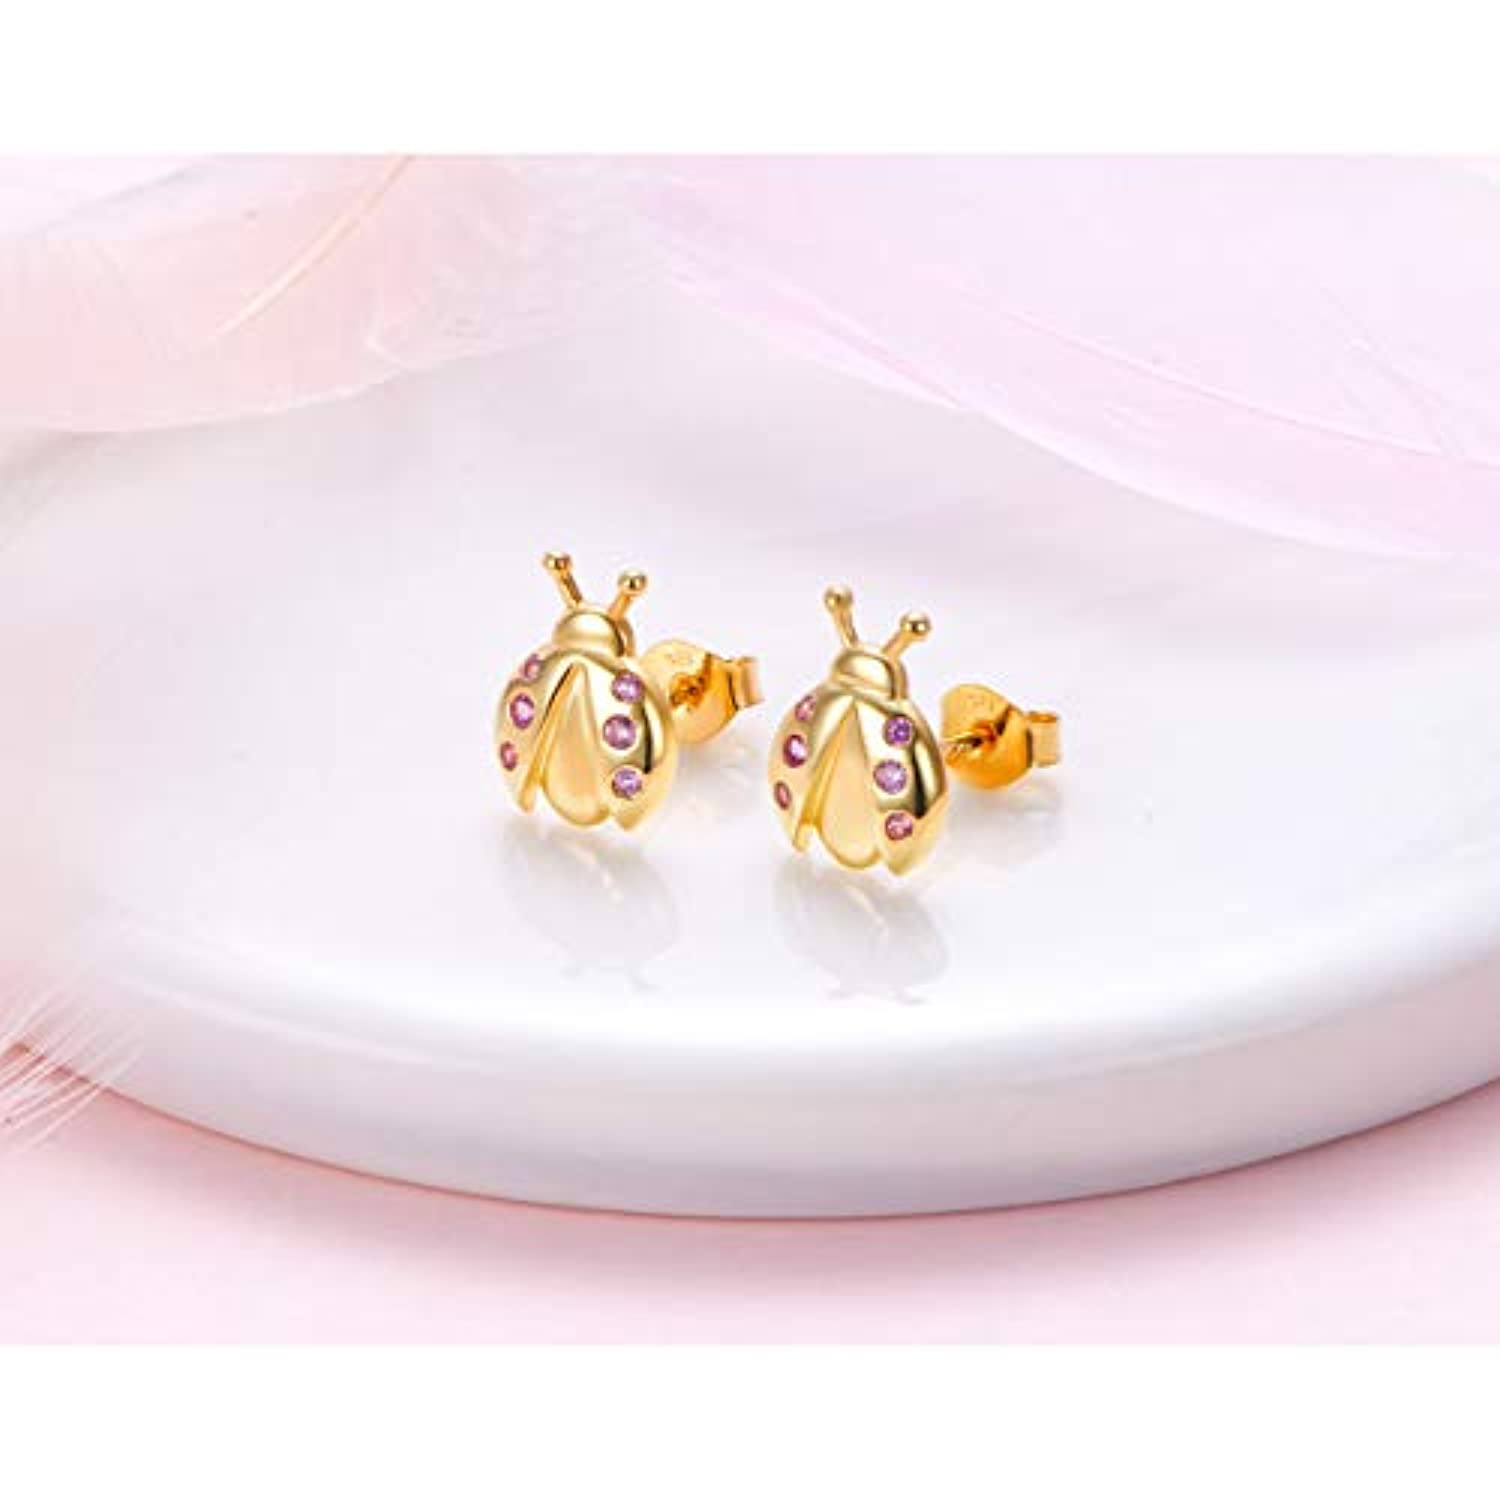 S925 Sterling Silver Animal Ladybug stud earrings